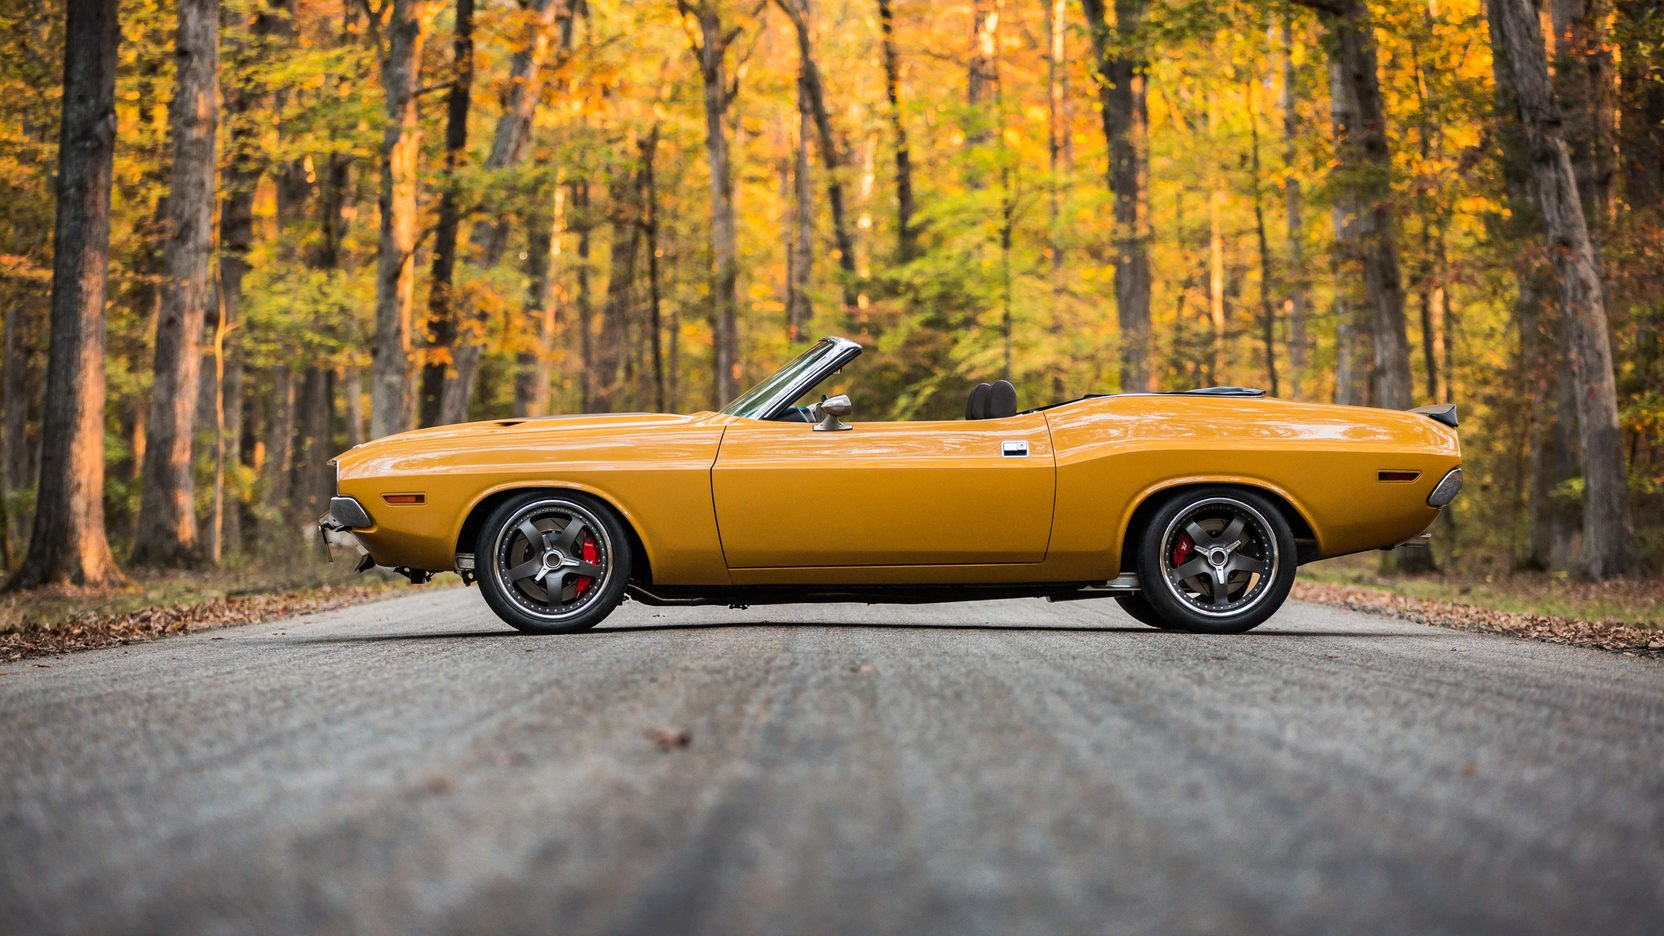 Restomod Dodge Challenger Packs Cubic Inches Of Muscle on 2015 Dodge Avenger Replacement